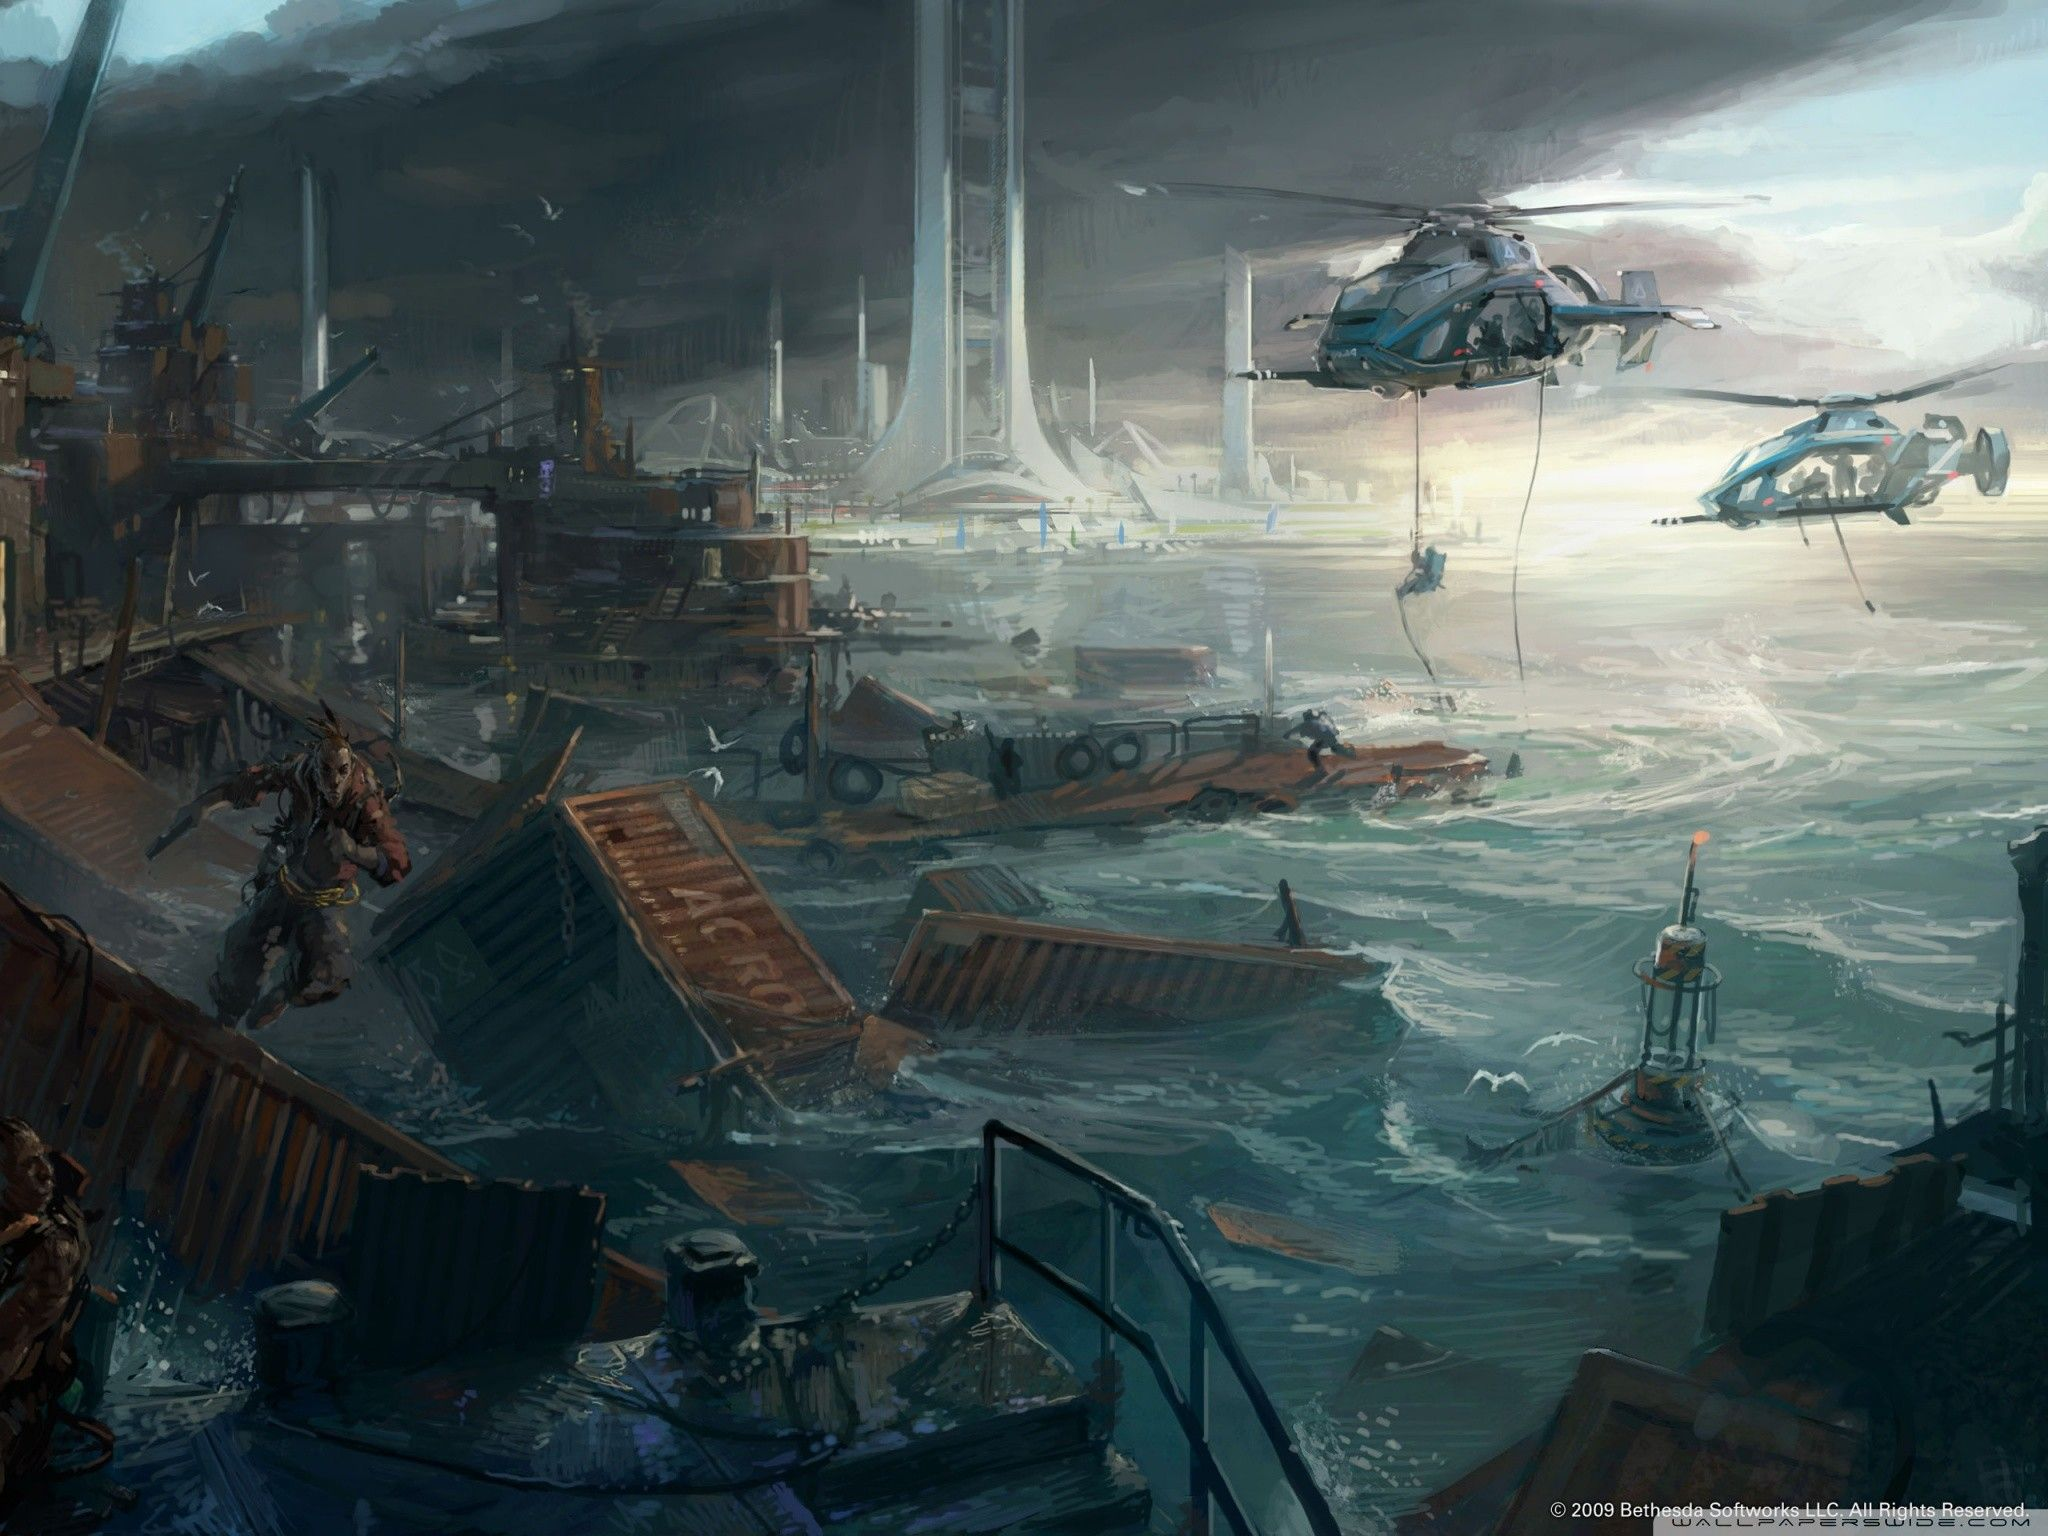 Star Wars Concept Art Wallpaper 67 Images Concept Art World